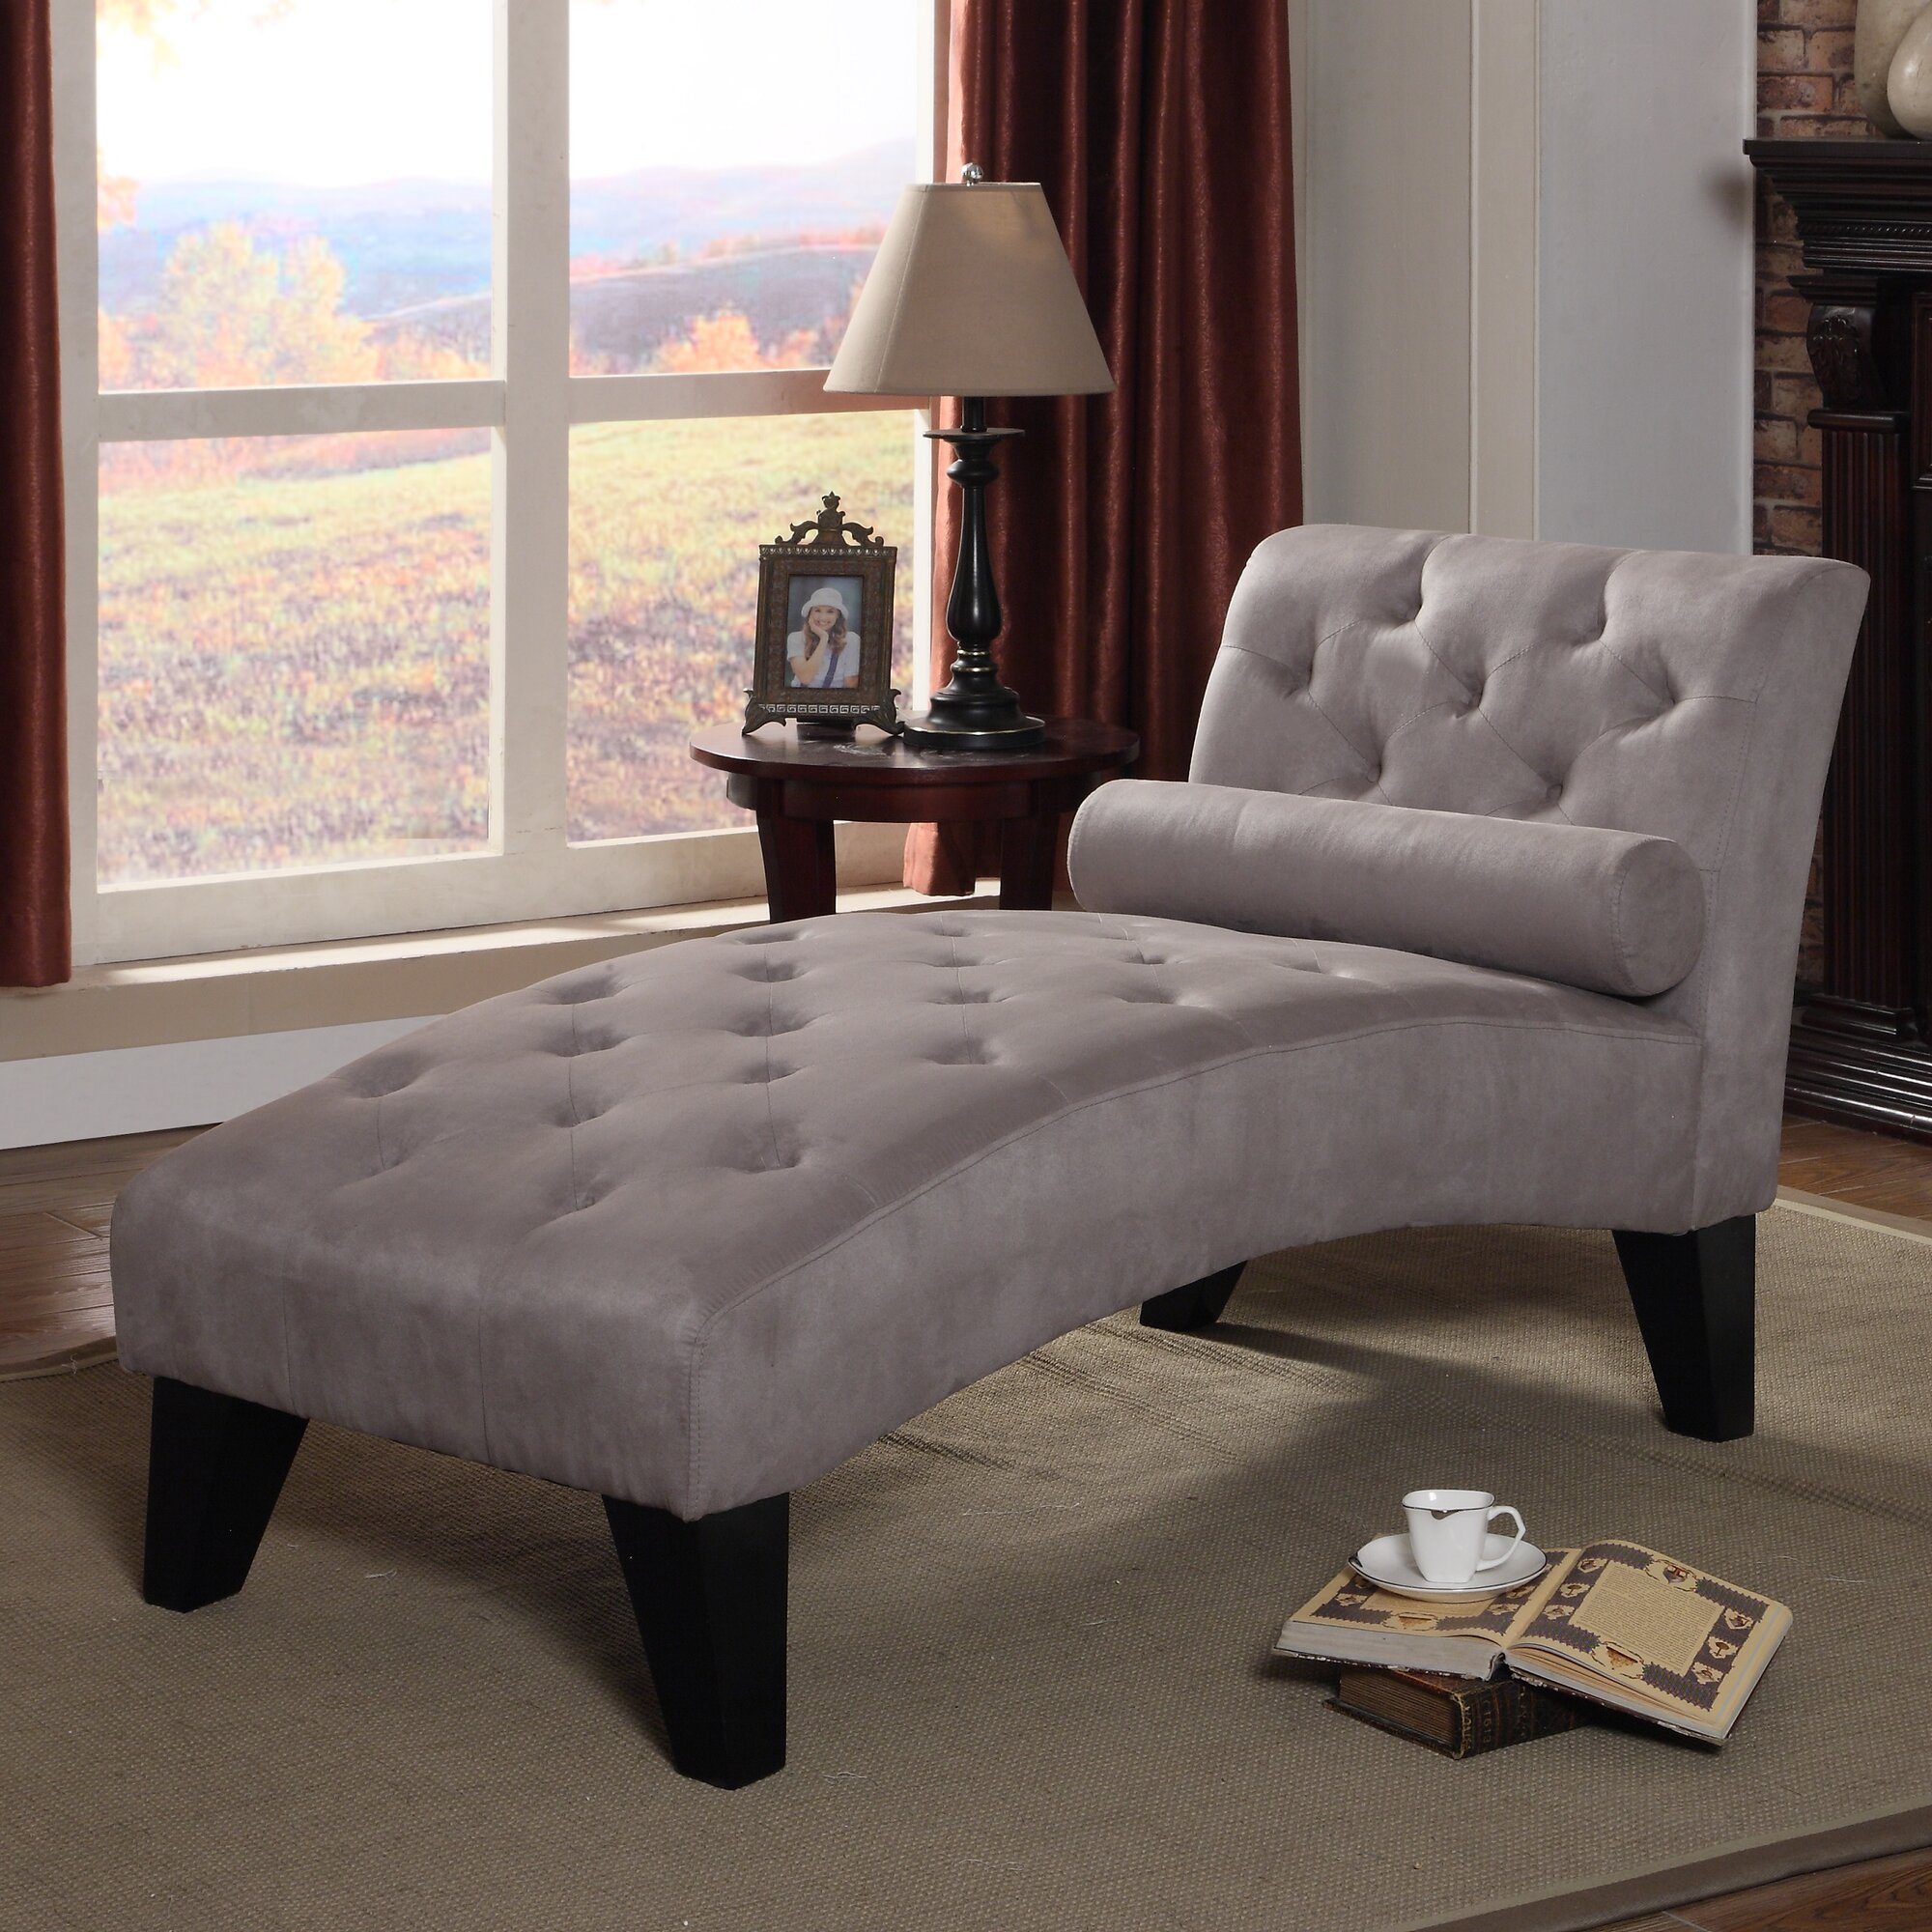 Zipcode Design Anabelle Chaise Lounge  Reviews Wayfair - Chaise lounge in living room